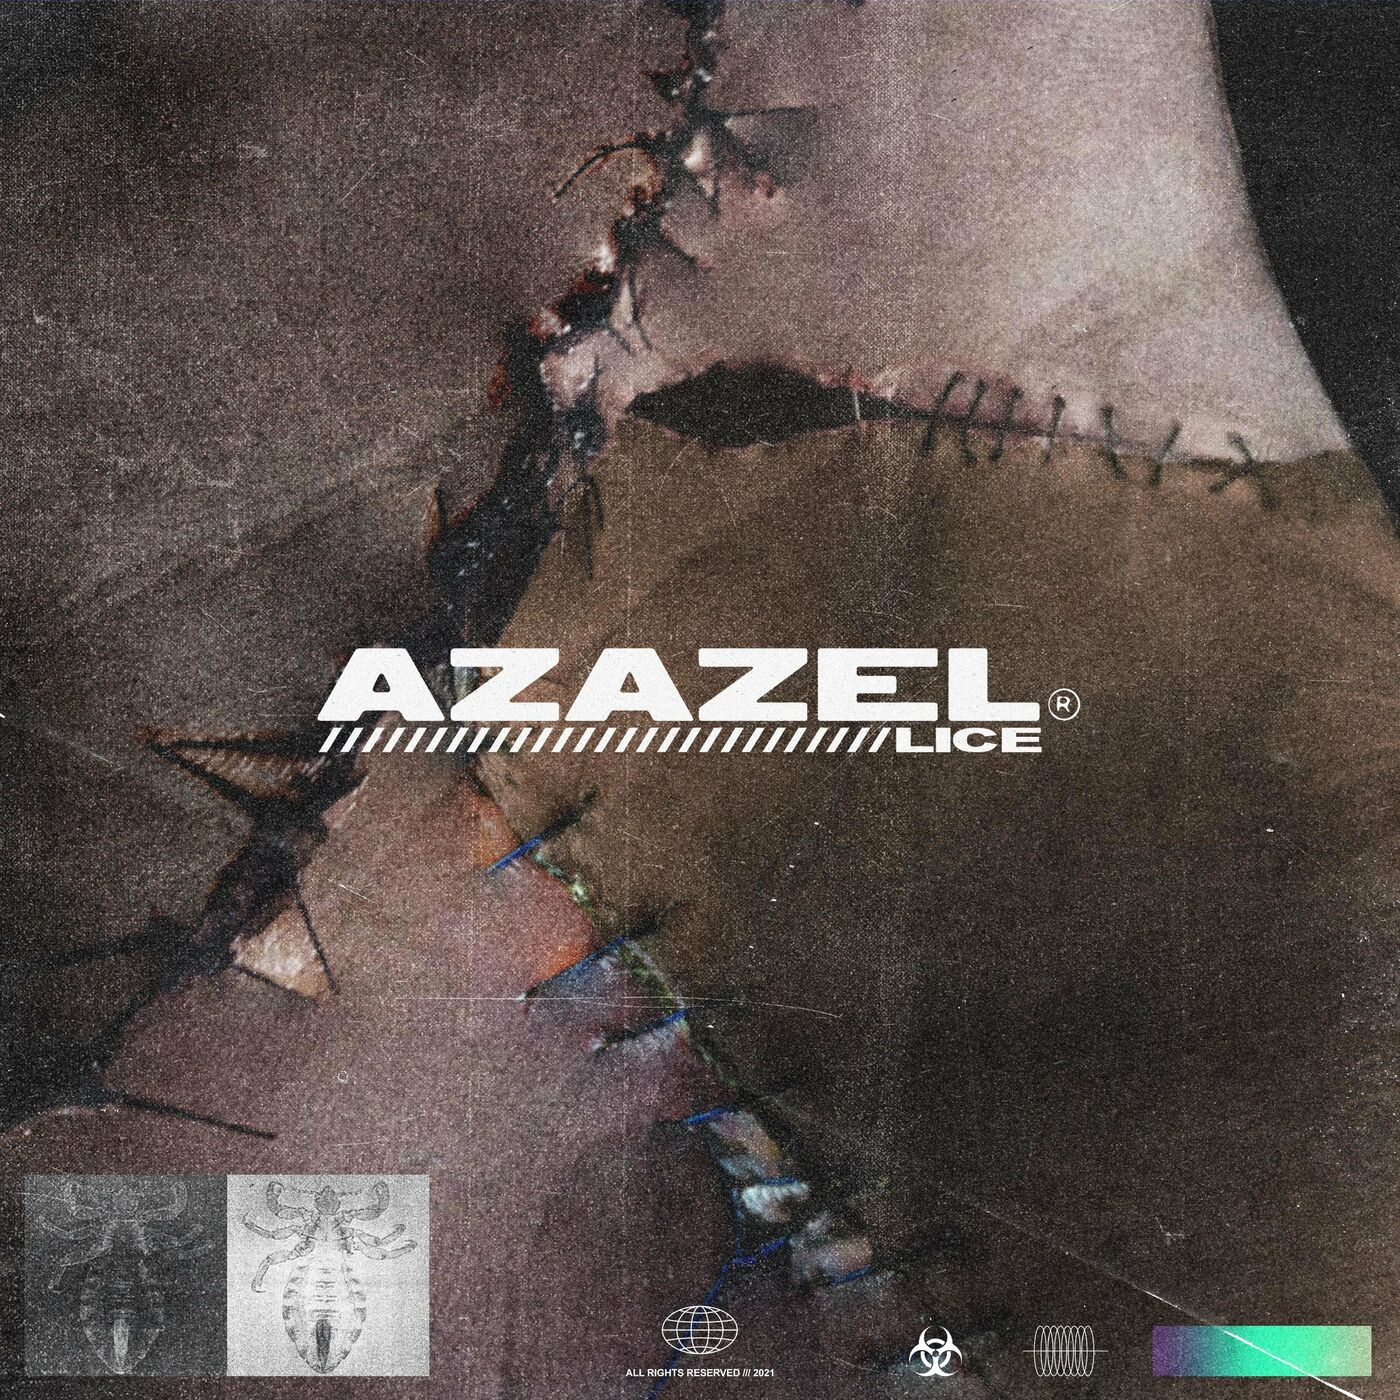 Azazel - LICE [single] (2021)